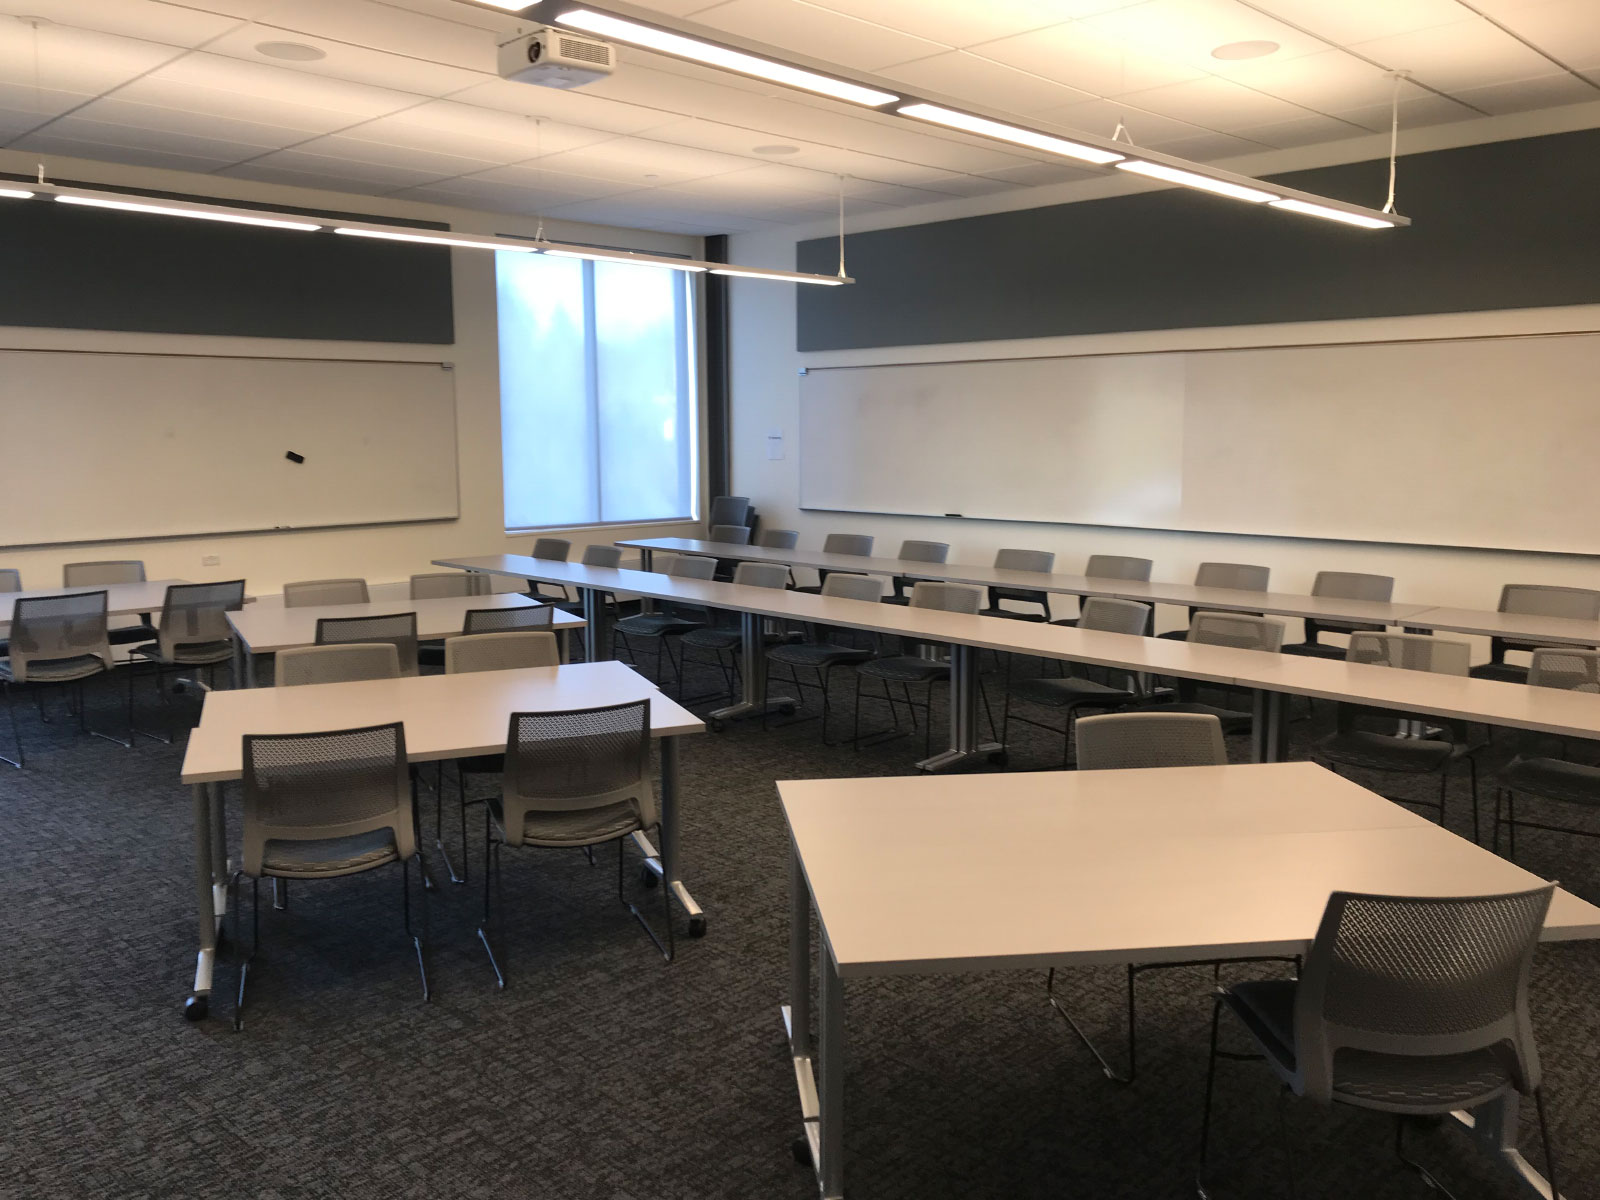 Two rows of tables and chairs in front of several separate tables in a Harmony campus classroom